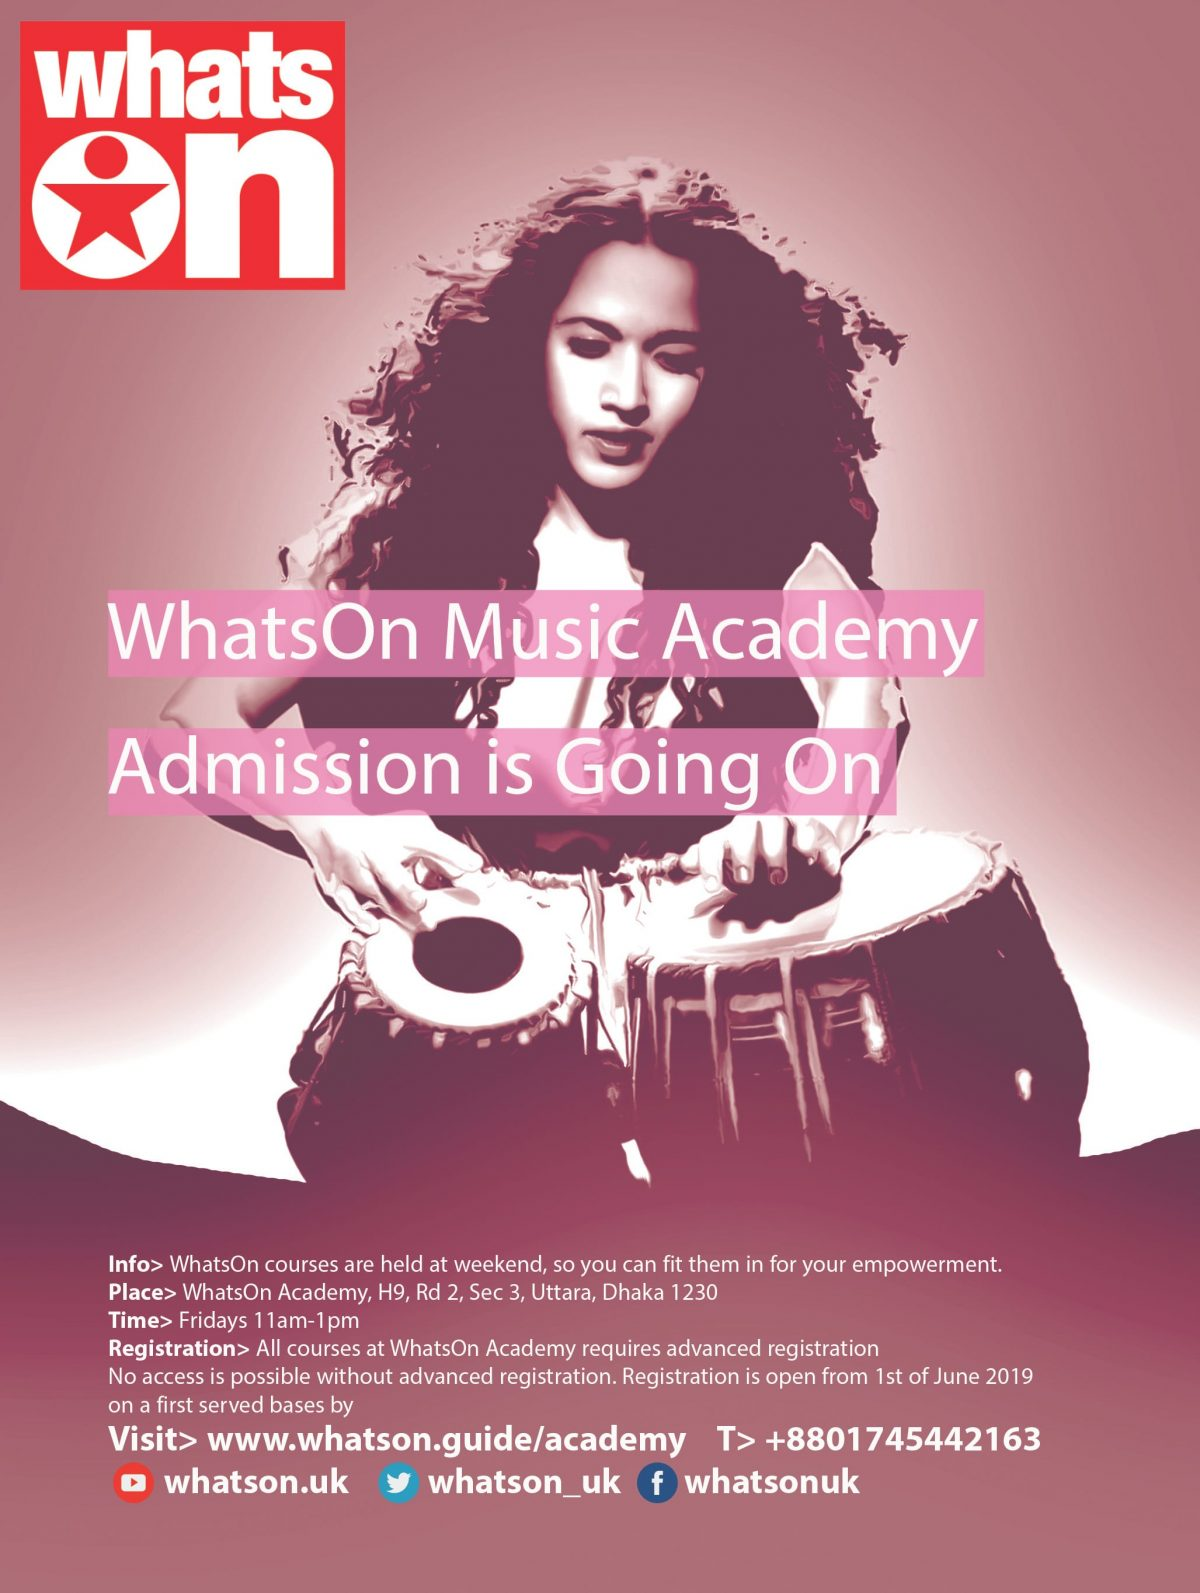 WhatsOn Music Academy